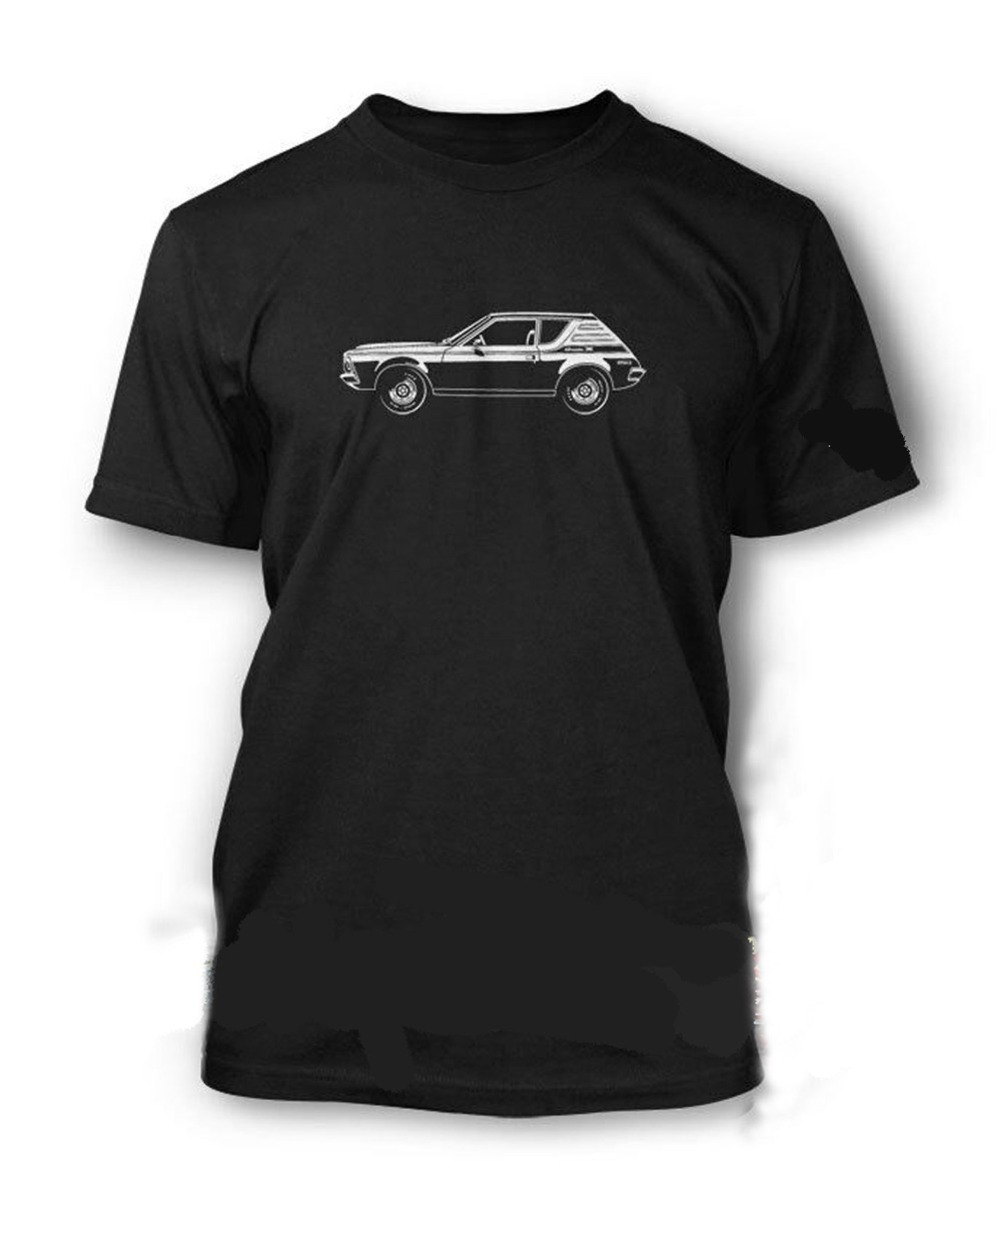 American Car AMC Gremlin X 1972 T-Shirt for Men Multiple Colors and Sizes